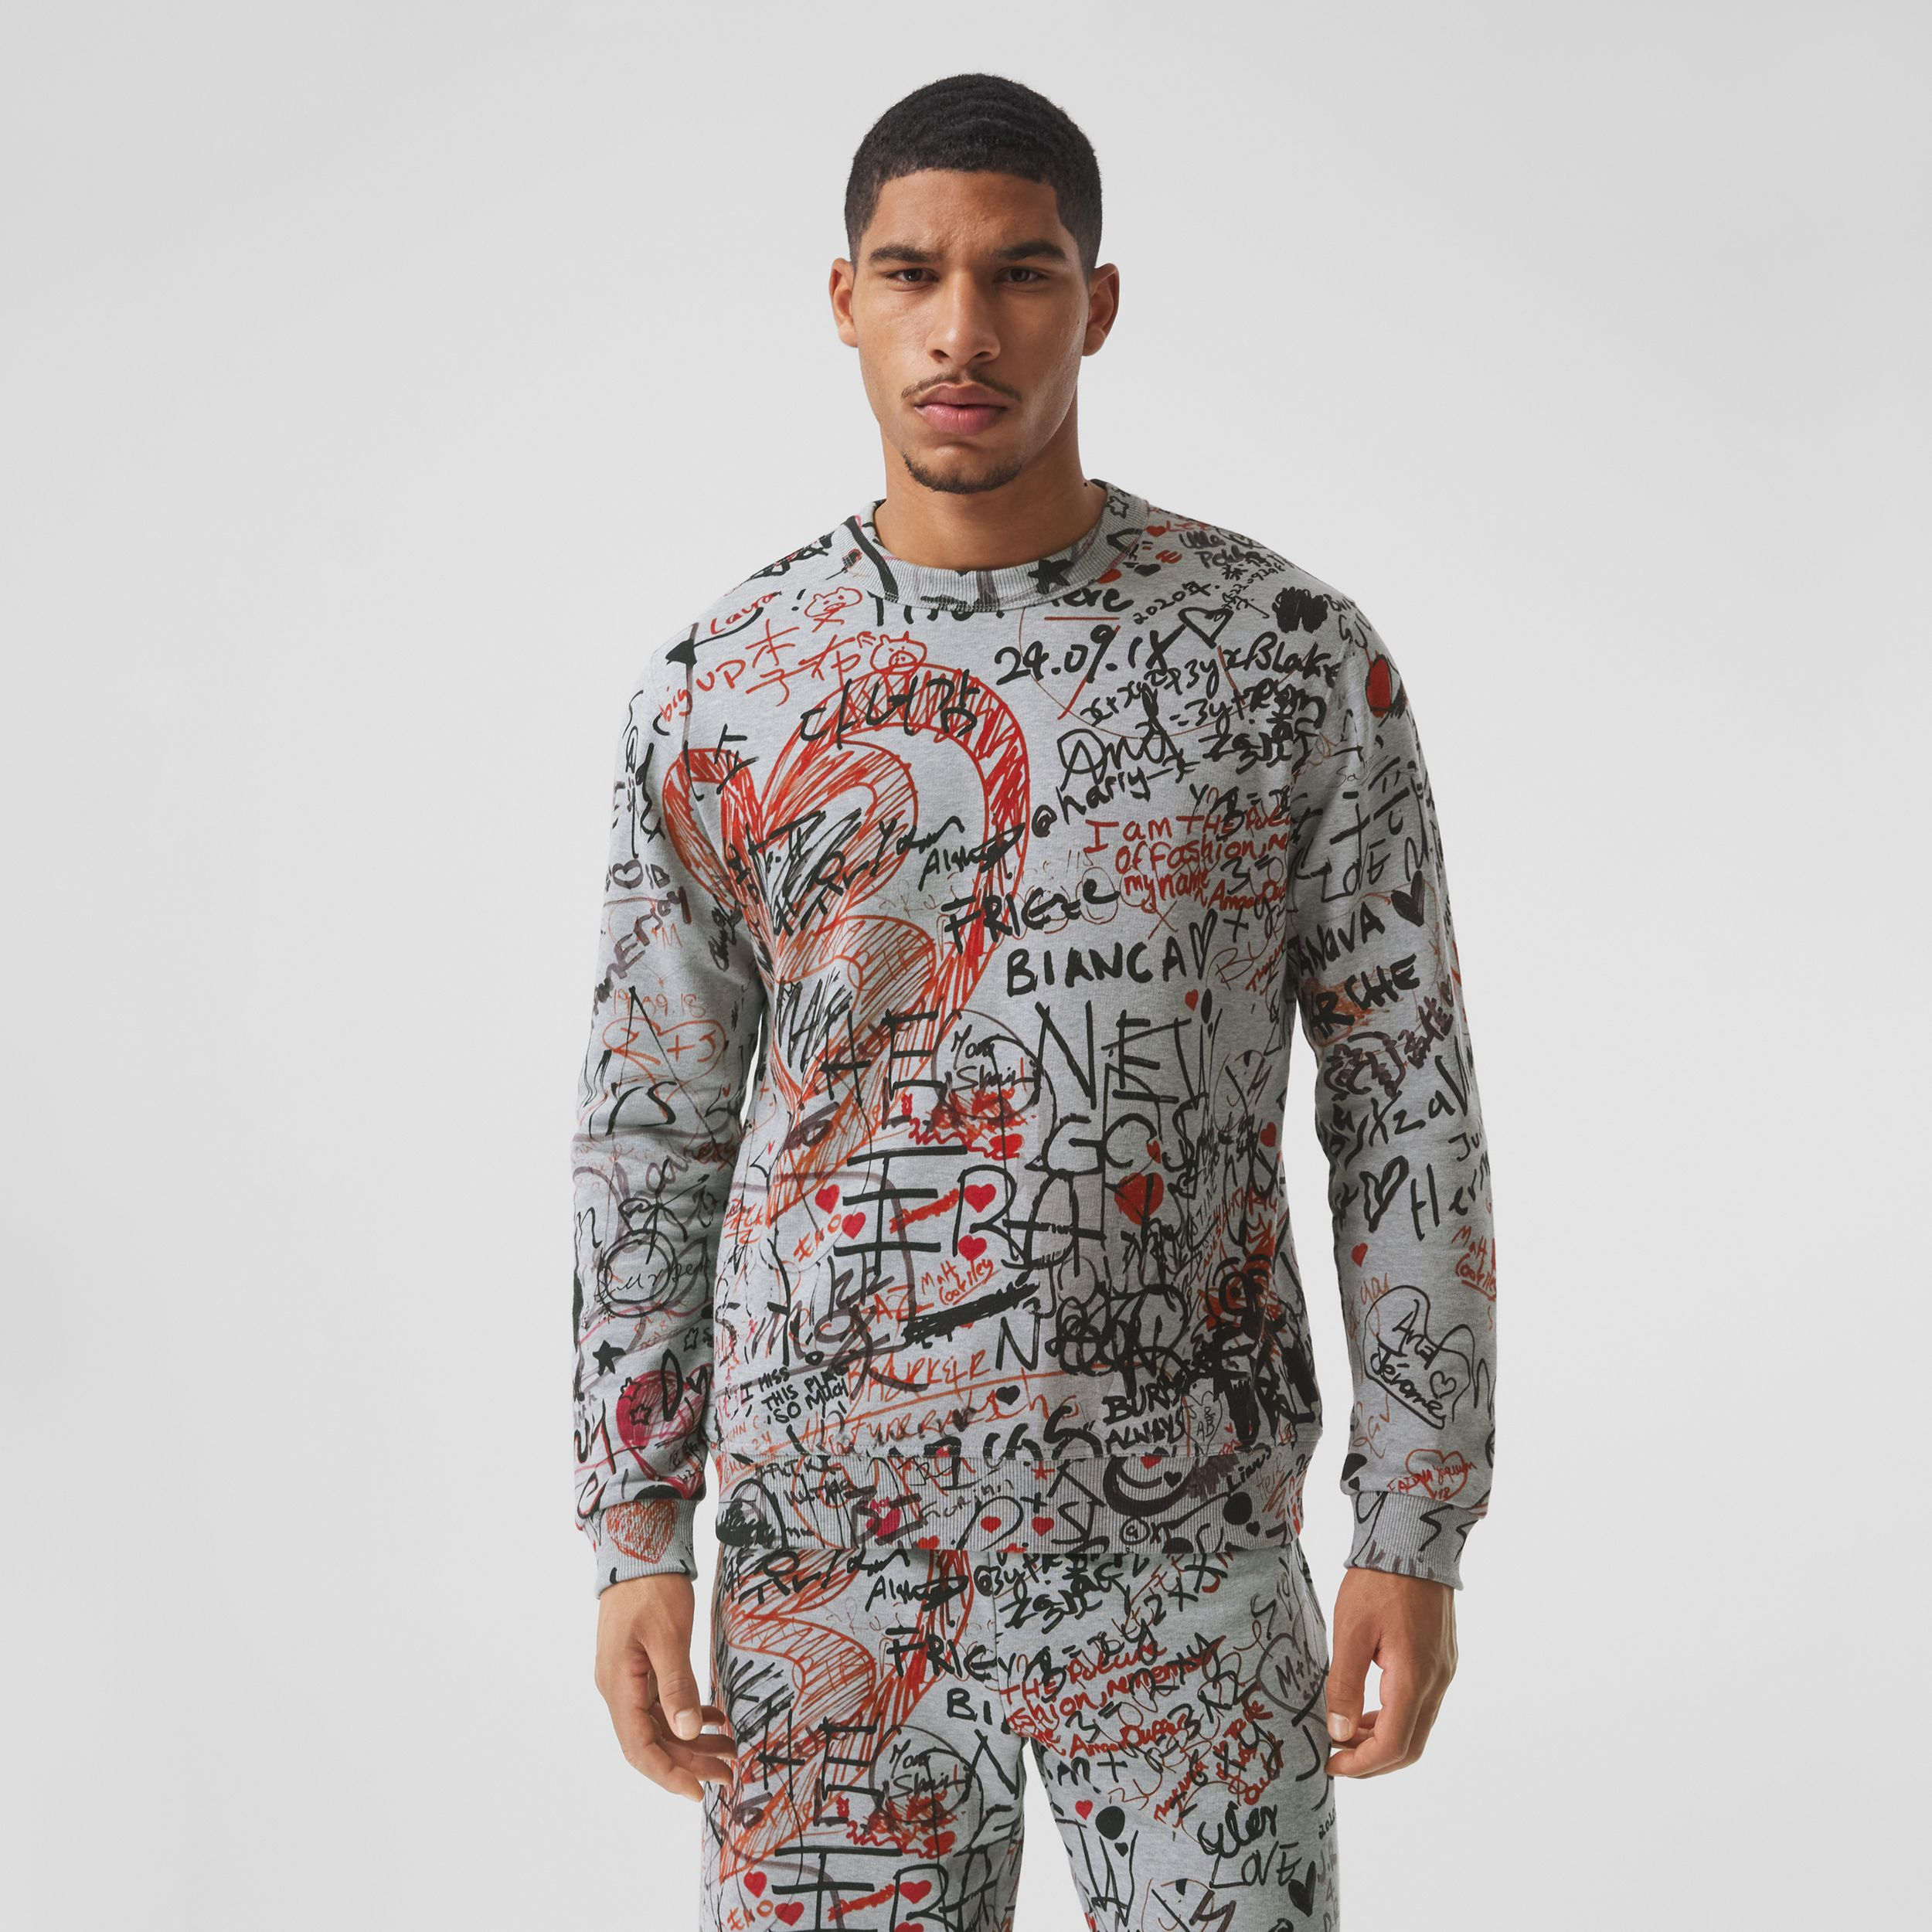 Graffiti Print Cotton Sweatshirt in Pale Grey Melange - Men | Burberry Australia - 1